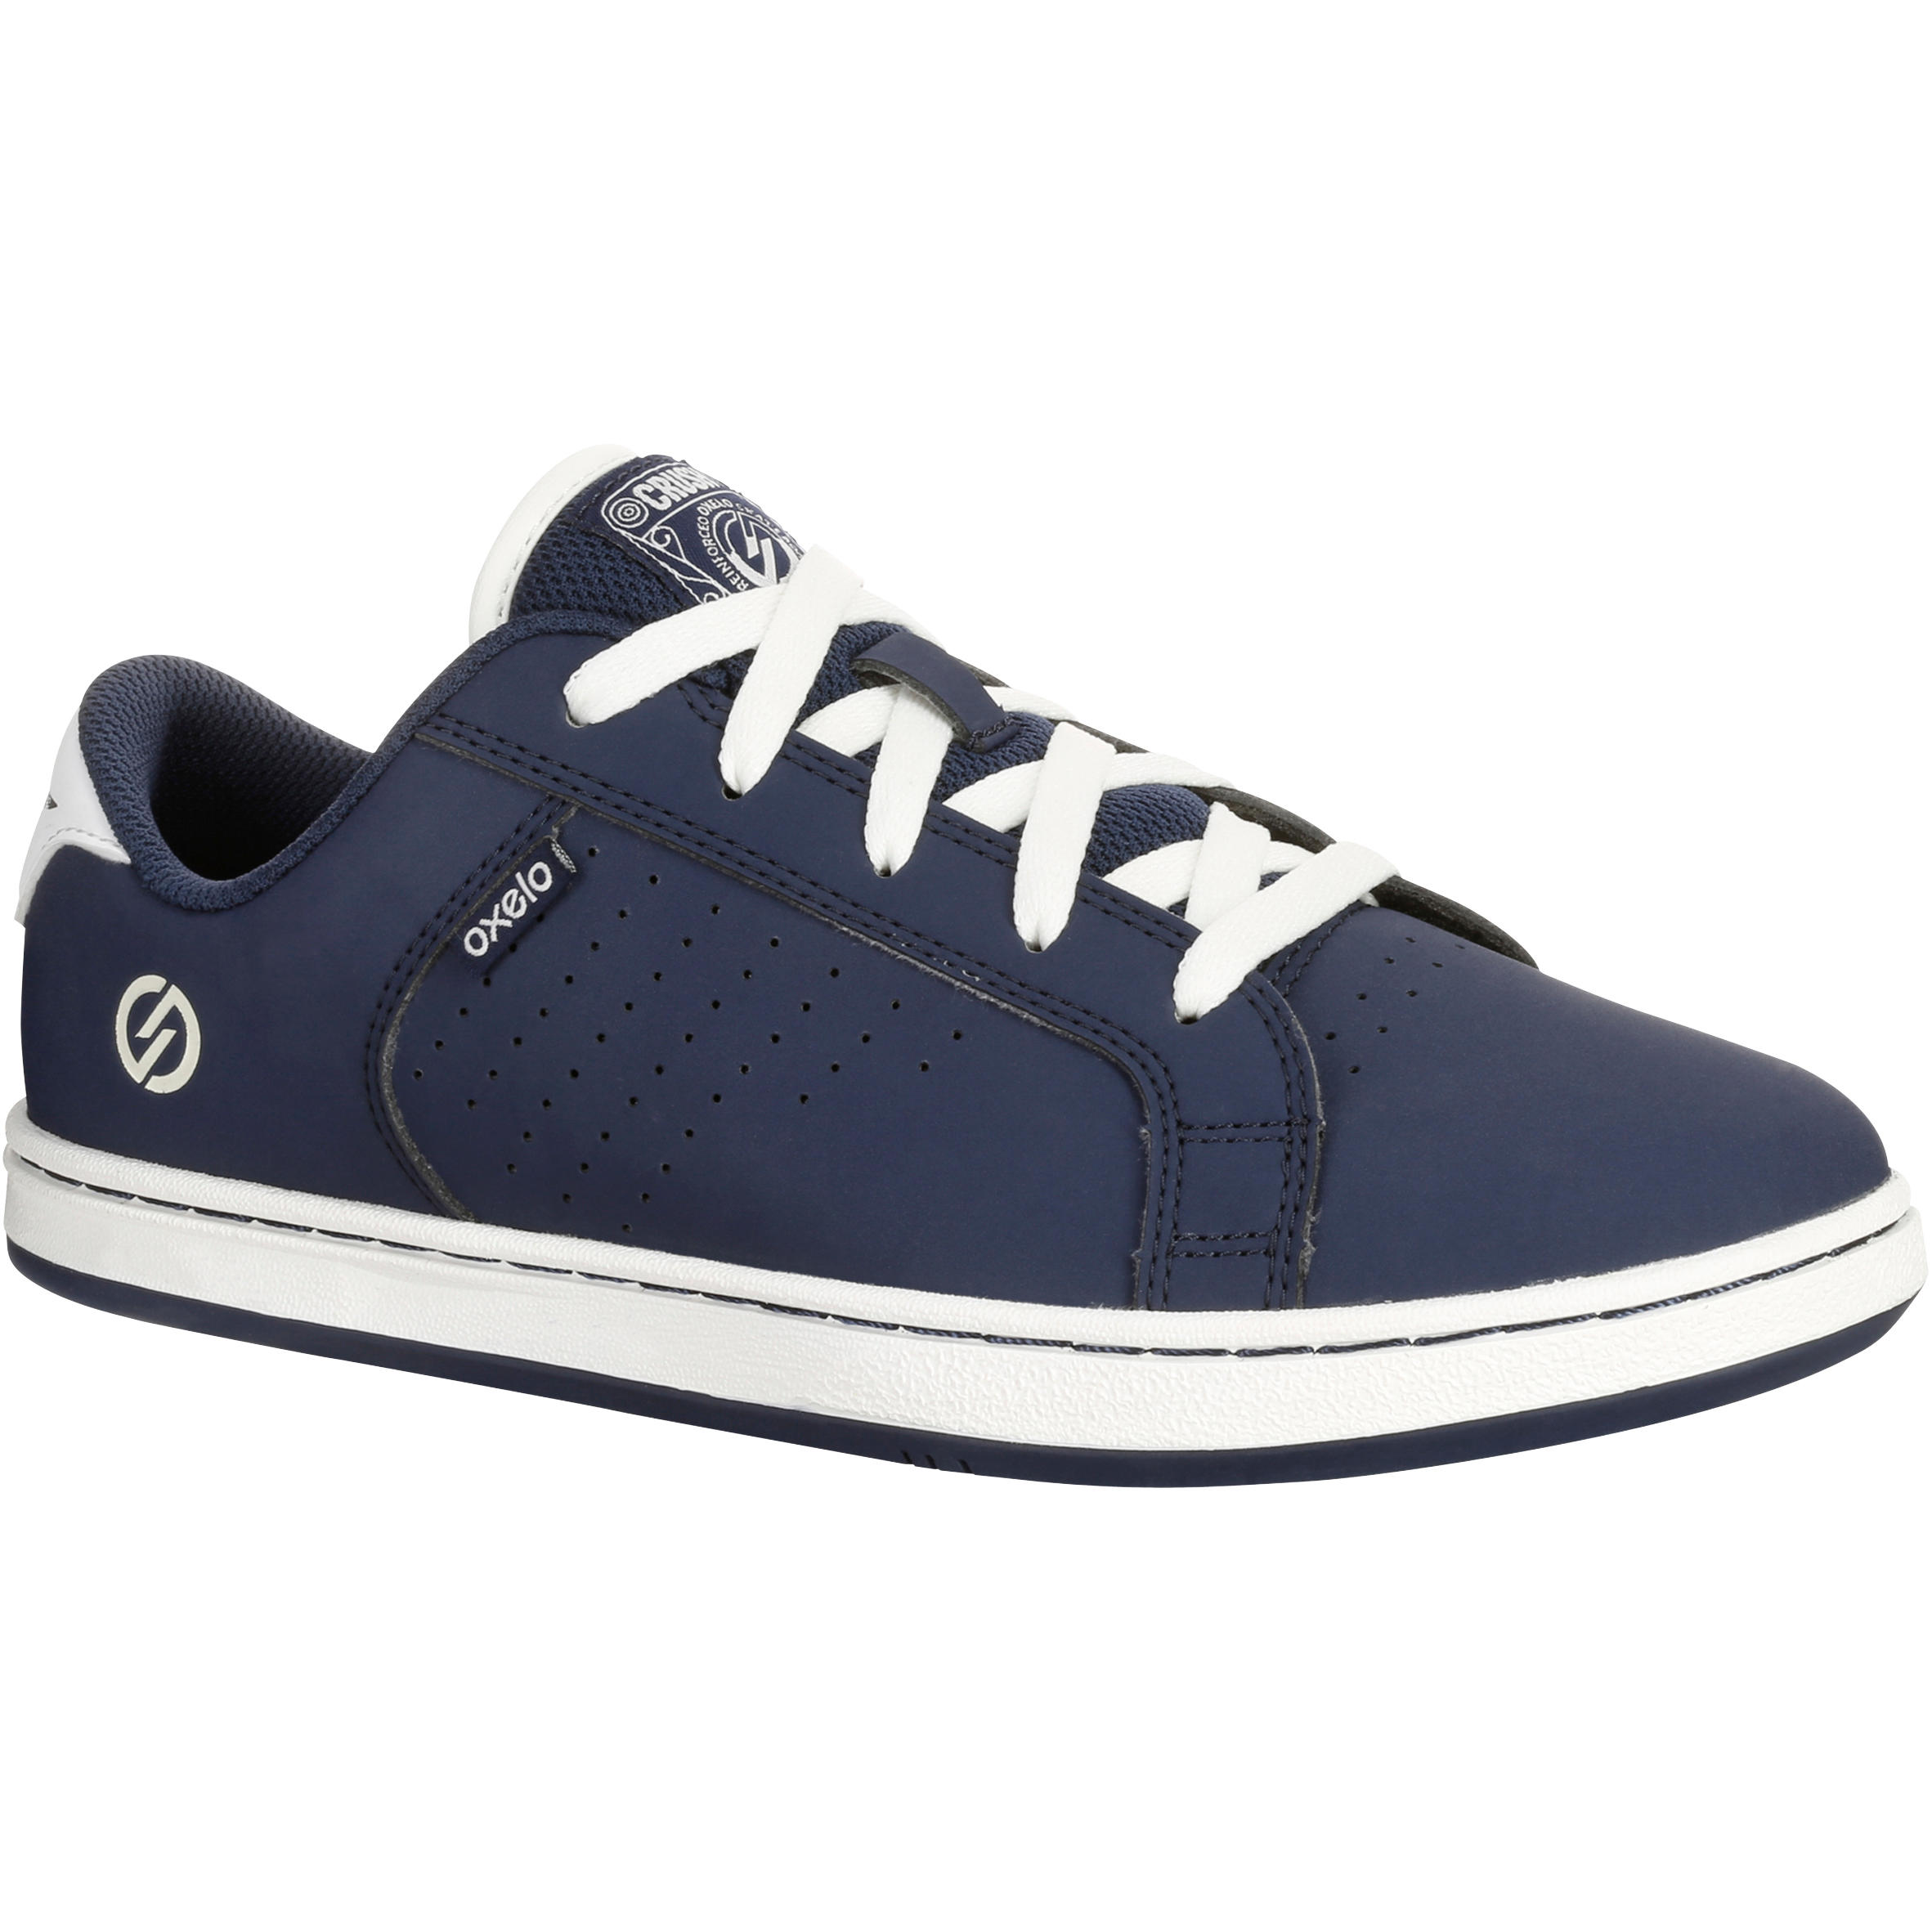 Crush Beginner II Kids' Skateboarding Shoes - Navy Blue